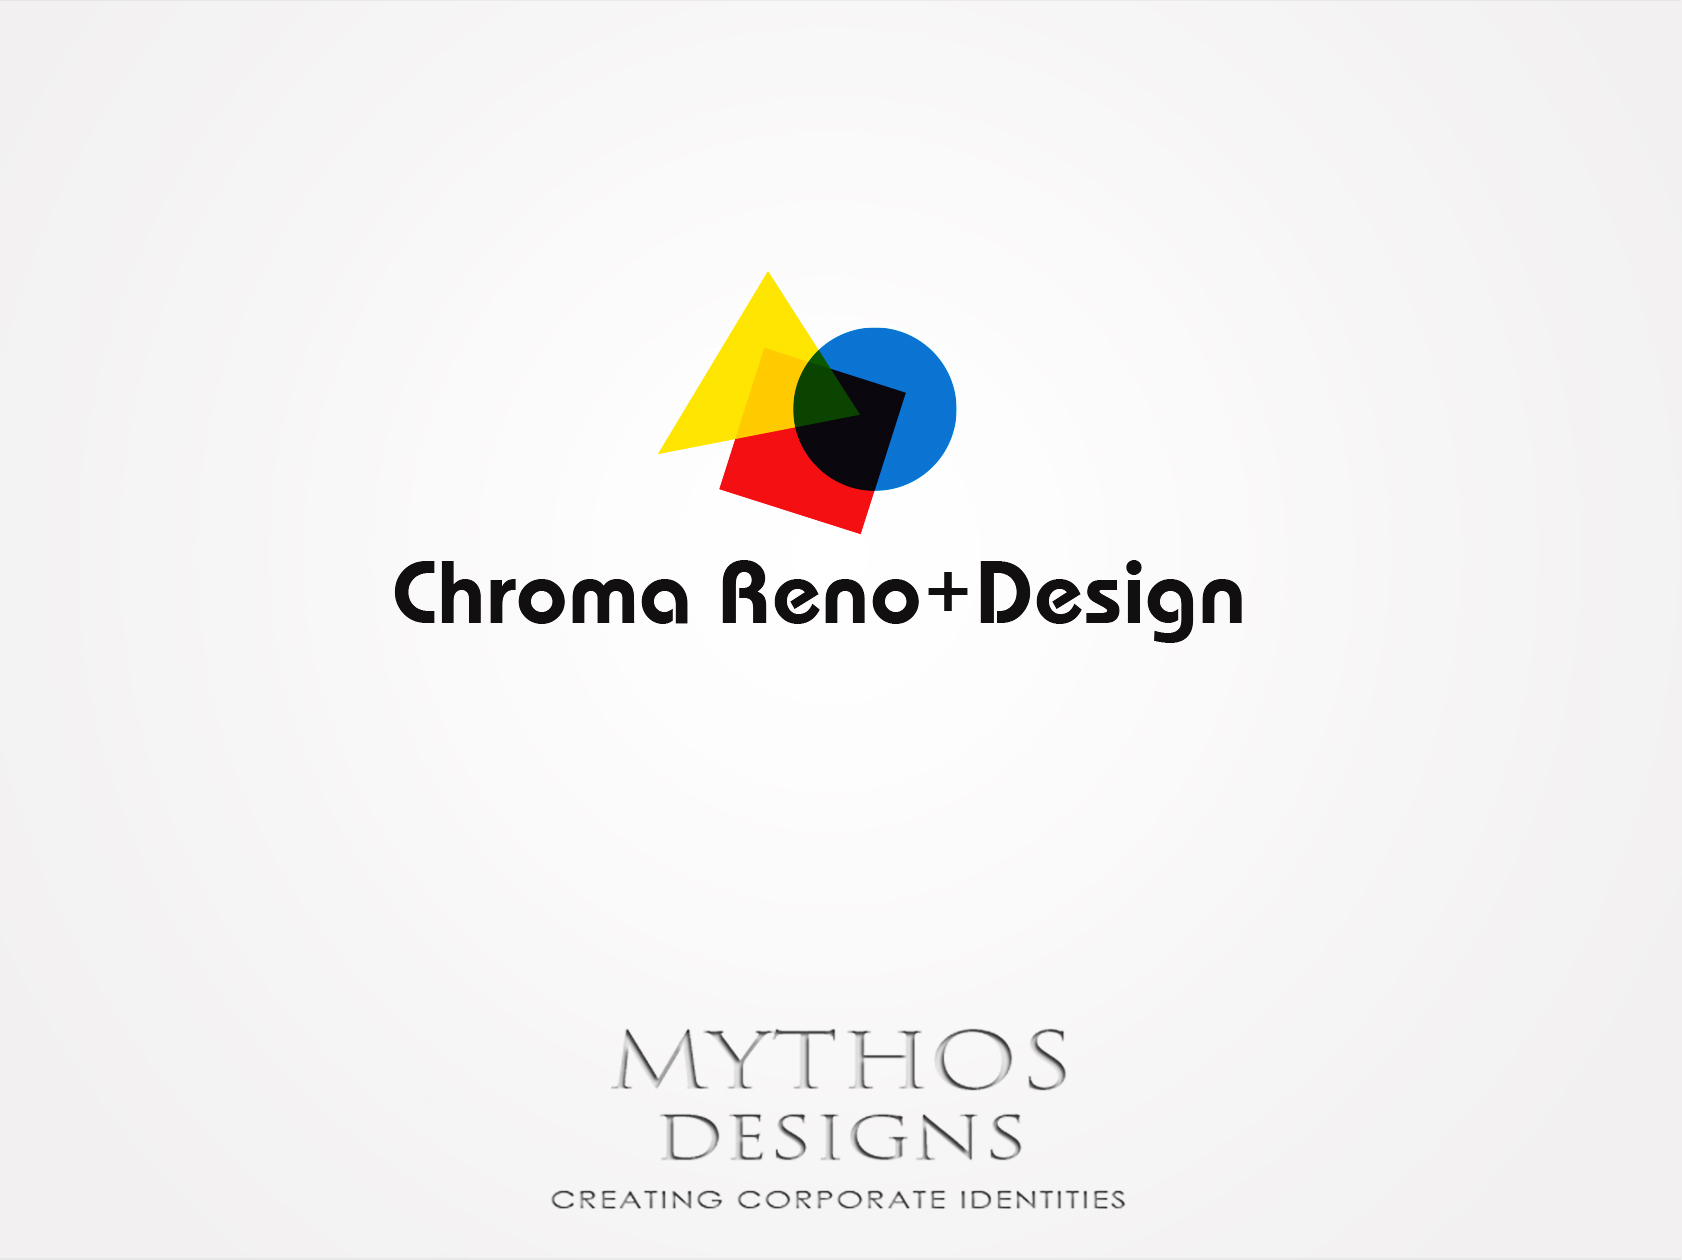 Logo Design by Mythos Designs - Entry No. 285 in the Logo Design Contest Inspiring Logo Design for Chroma Reno+Design.